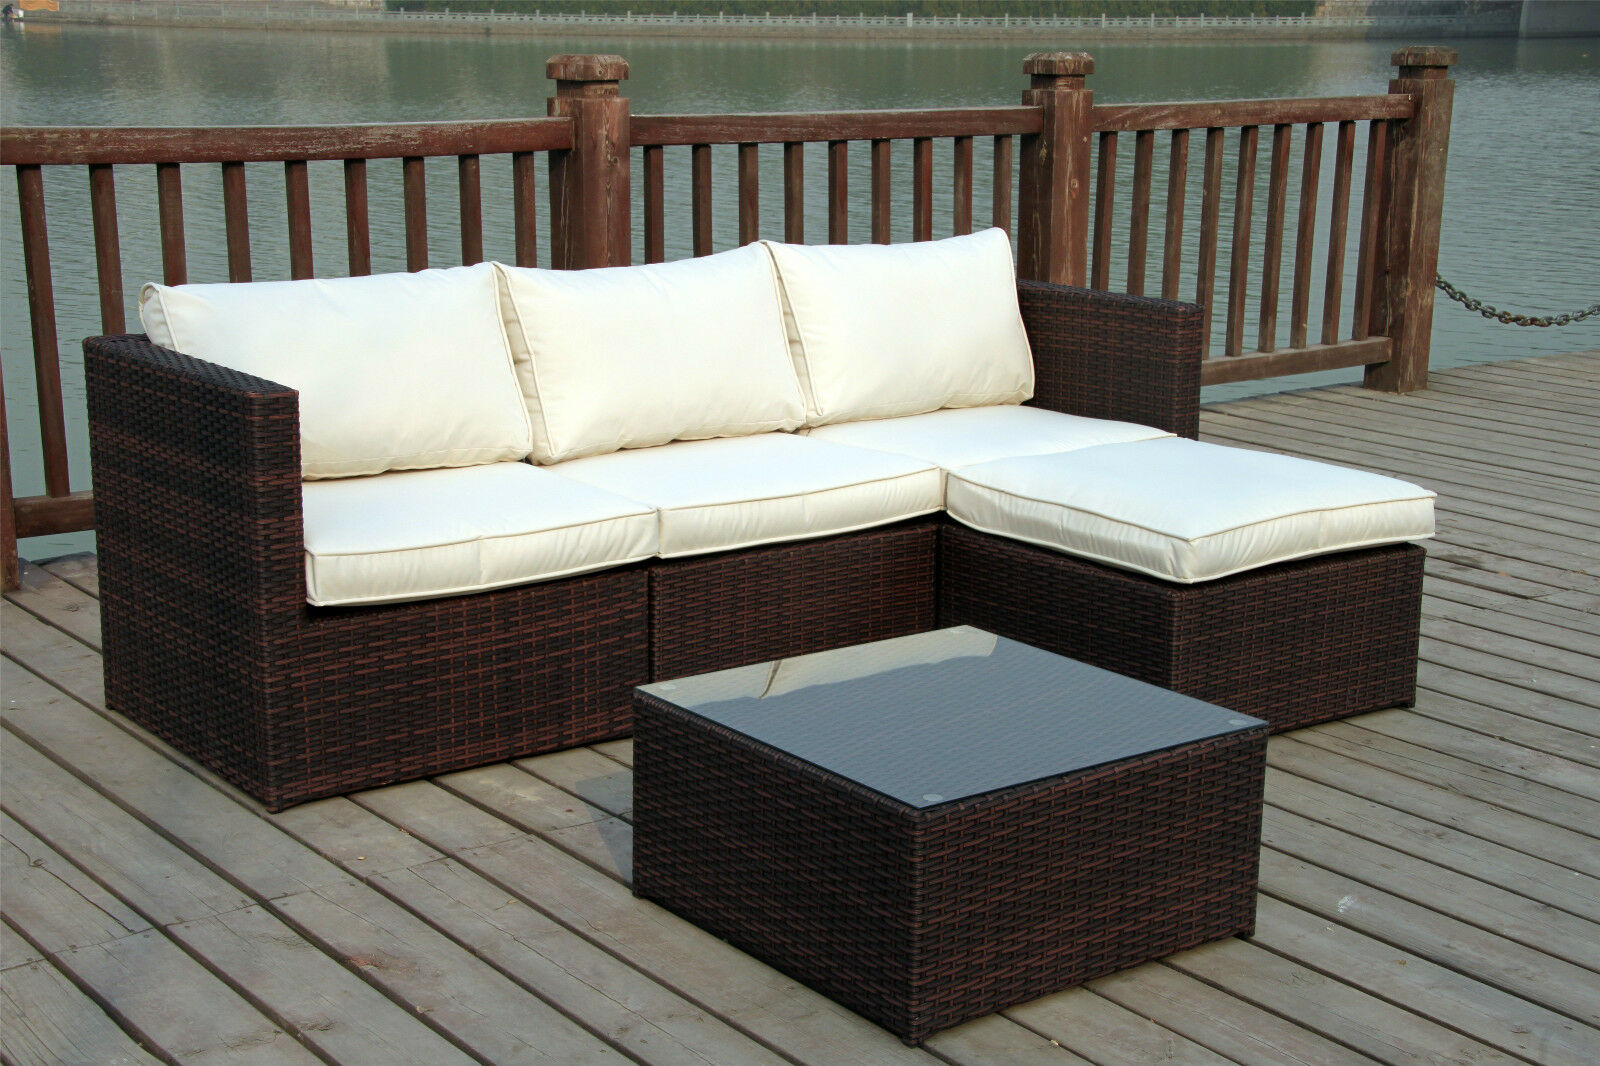 Rattan Corner Sofa Ireland New Rattan Wicker Conservatory Outdoor Garden Furniture Set Corner